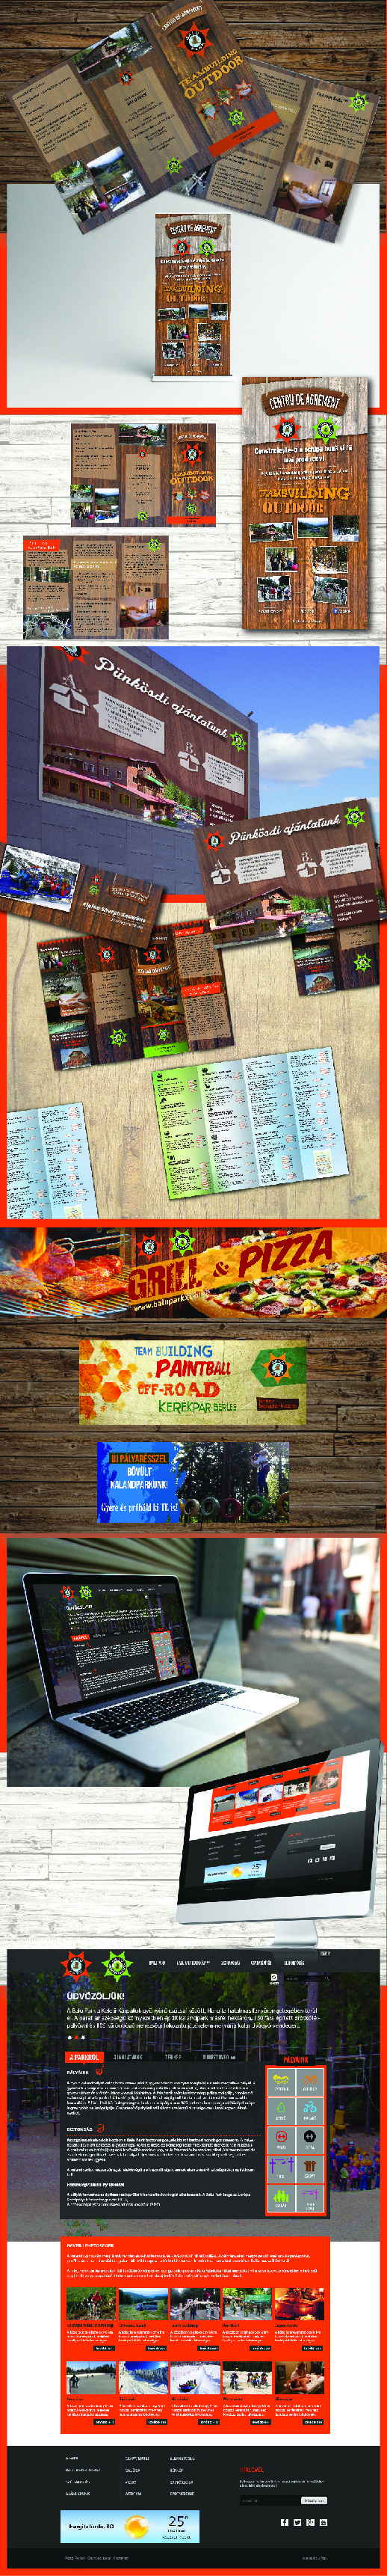 Flyer - Banner - Menu - Rollup - Mockup design for Balu Park - Romania #1 Adventure Park